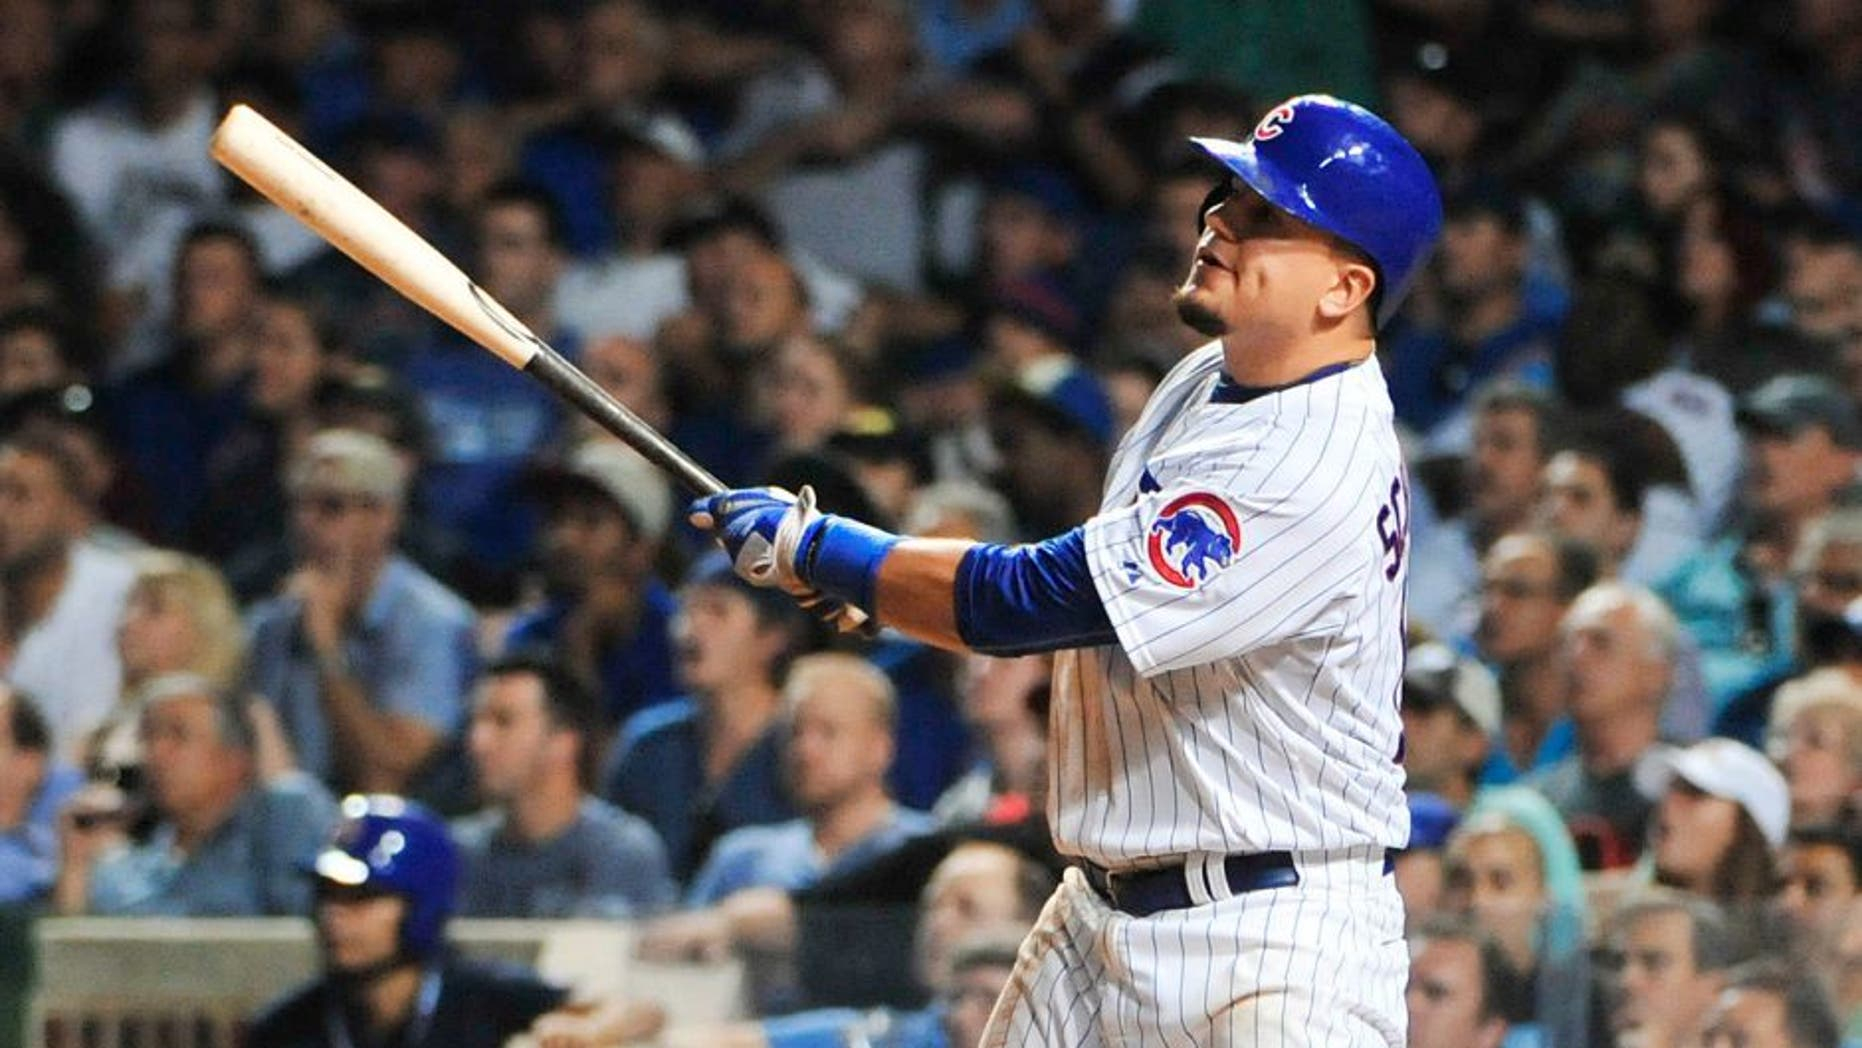 CHICAGO, IL - SEPTEMBER 01: Kyle Schwarber #12 of the Chicago Cubs hits a two-run home run against the Cincinnati Reds during the seventh inning on September 1, 2015 at Wrigley Field in Chicago, Illinois. (Photo by David Banks/Getty Images)